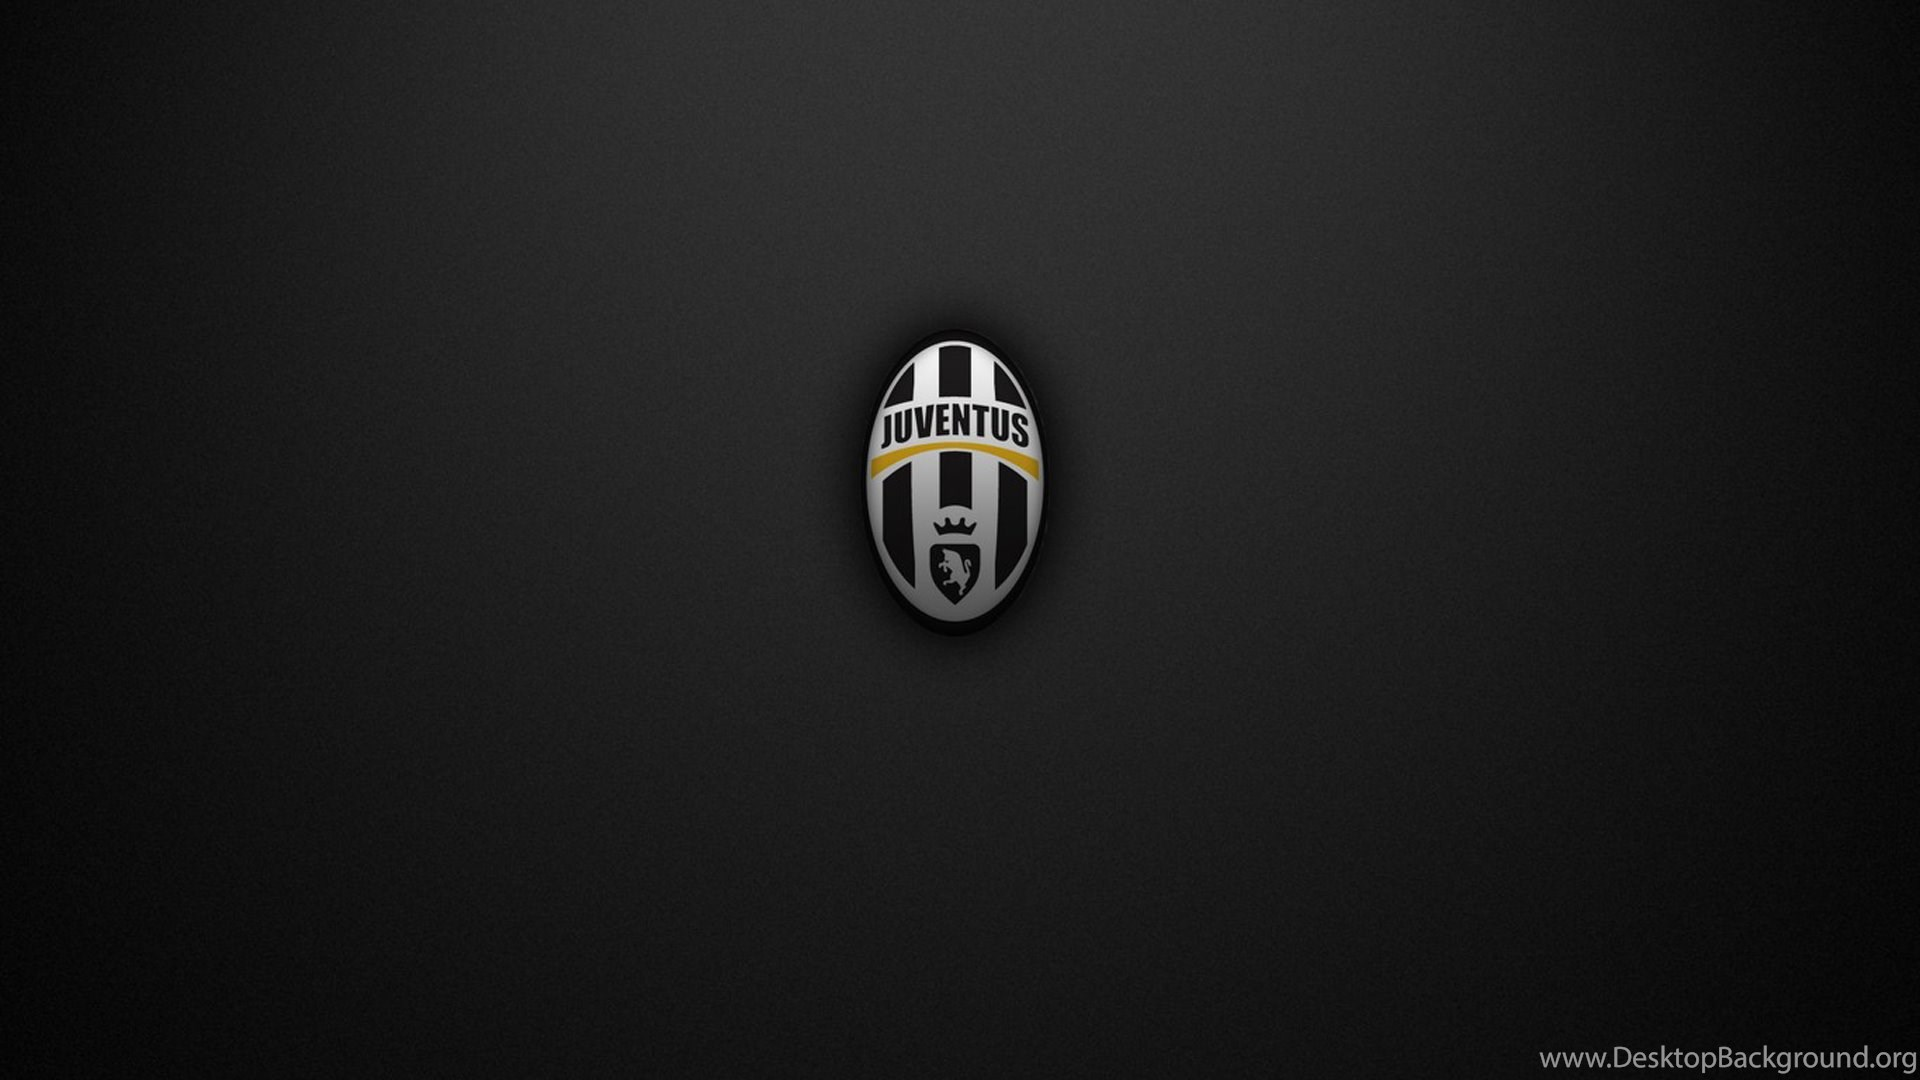 Sports Juventus Wallpapers Cool Soccer Wallpapers 1920x1080 Jpg M 1435255664 Desktop Background